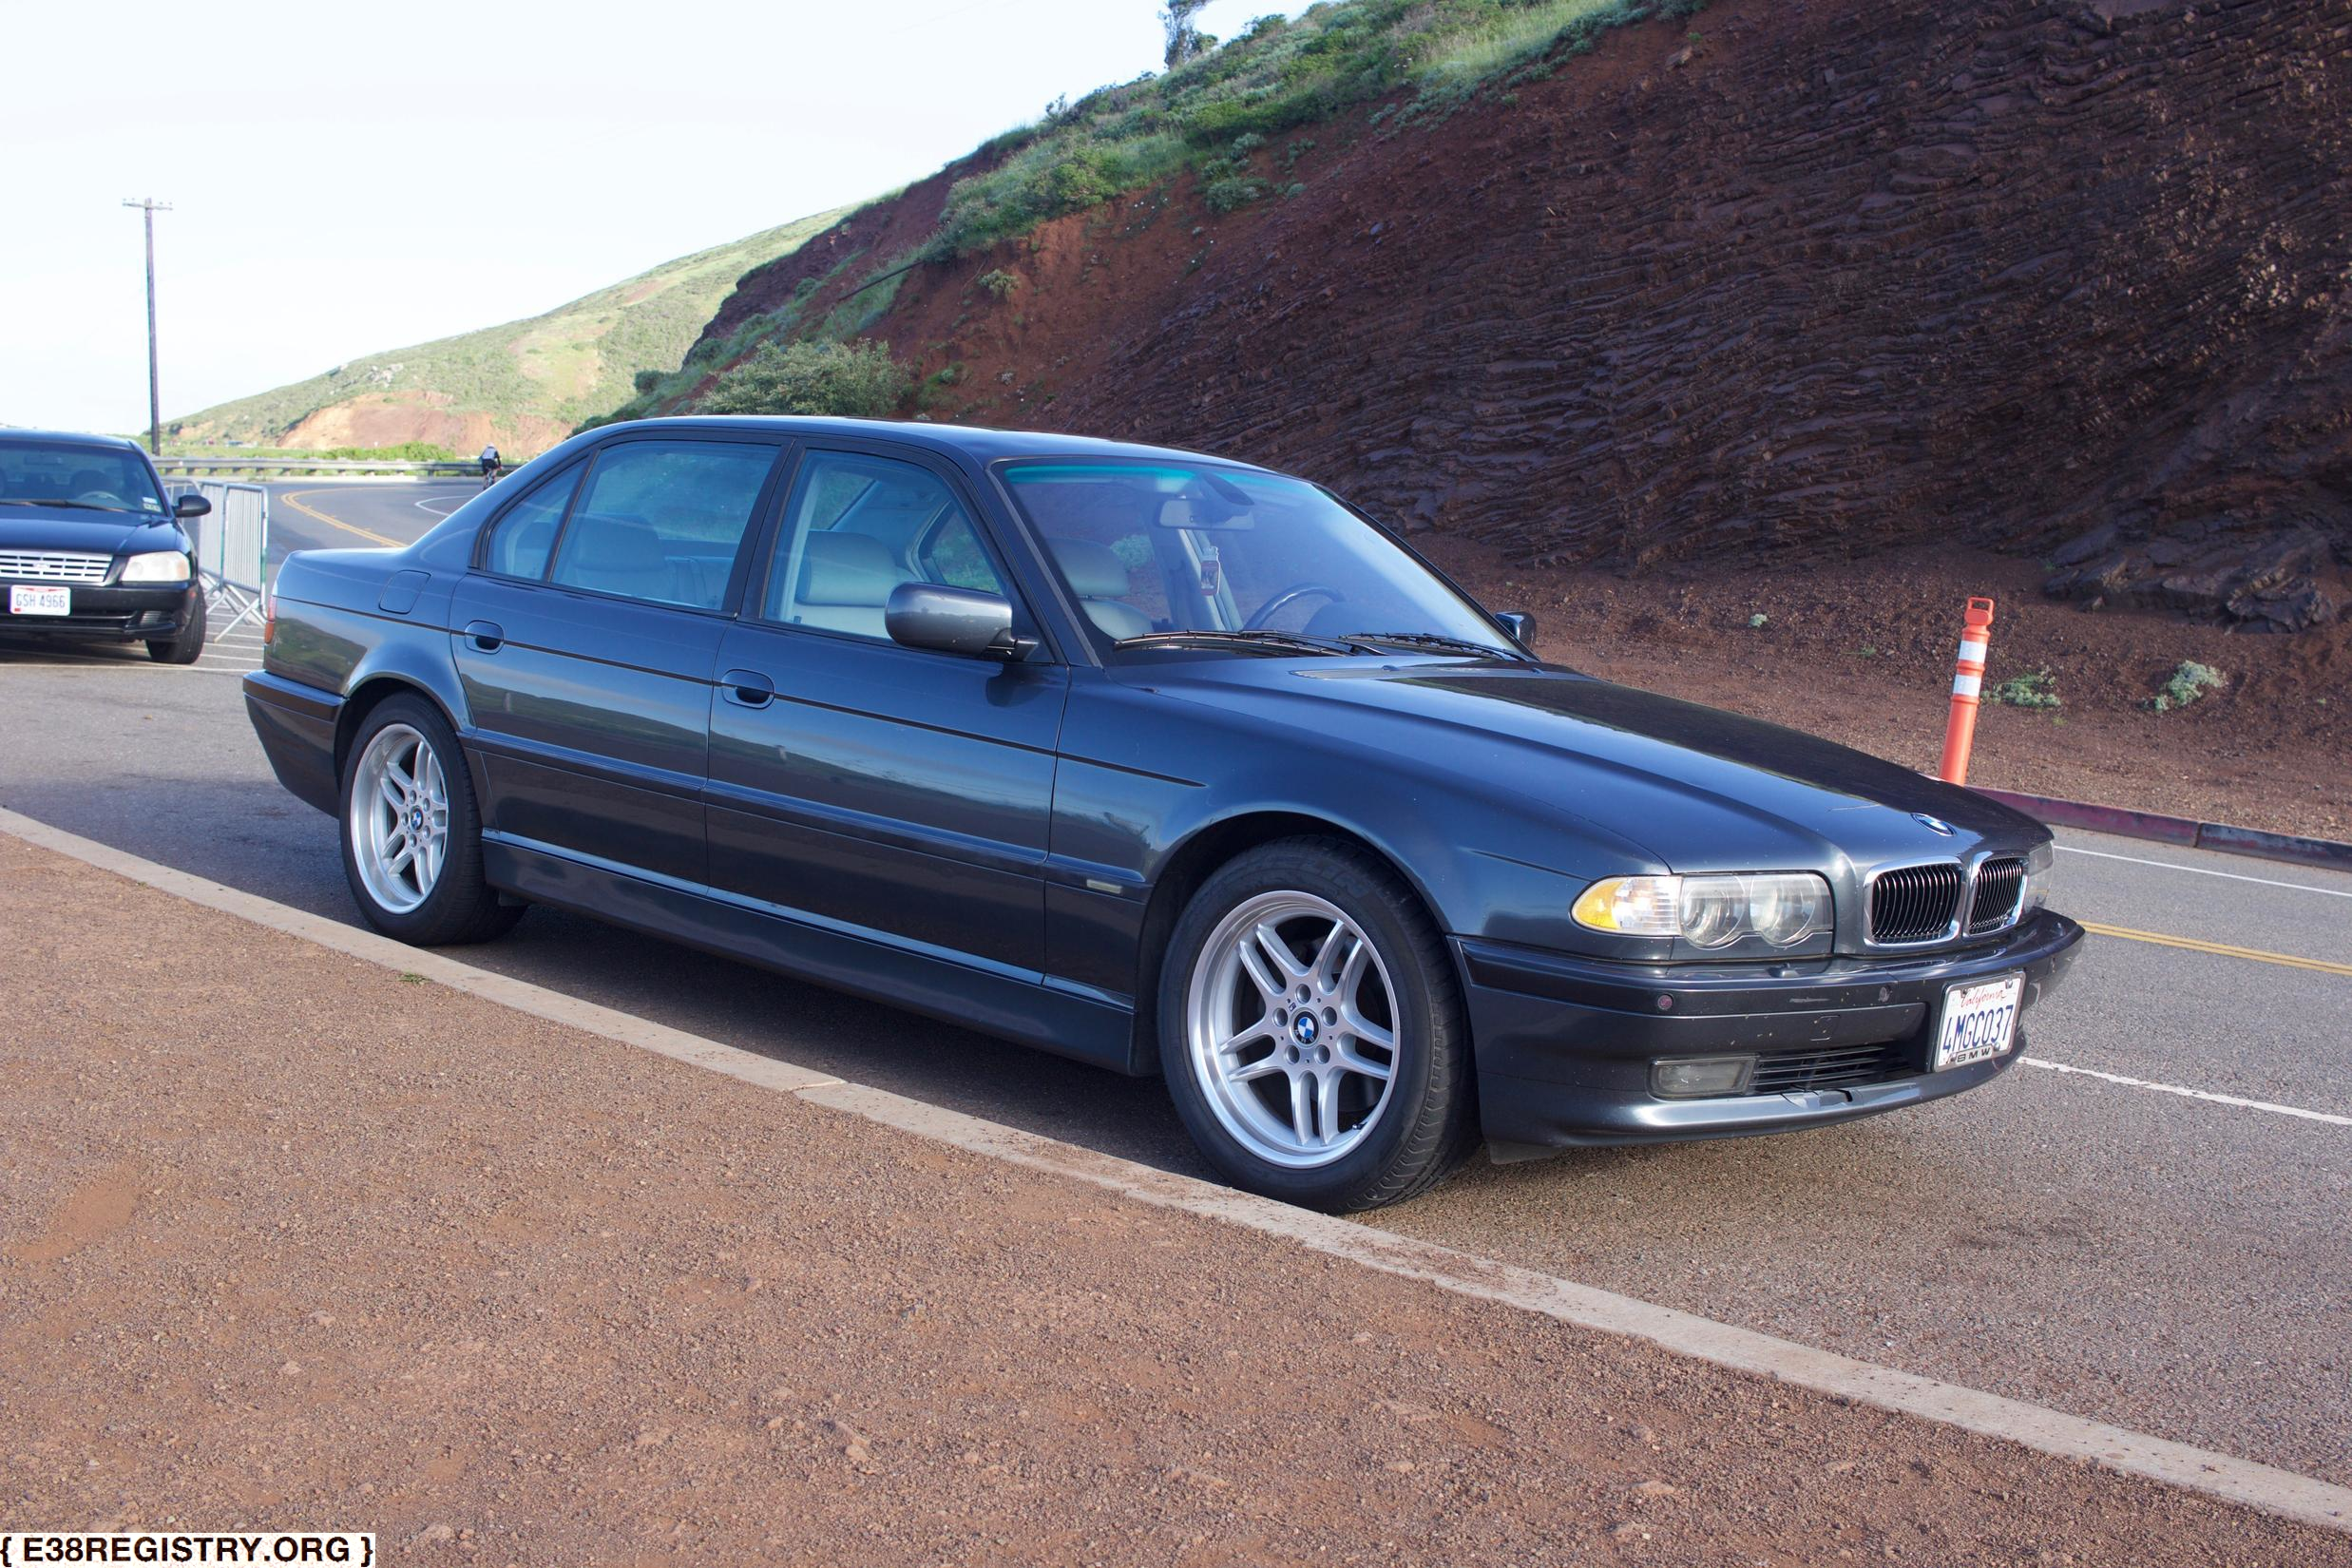 Anthrazit Metallic Bmw Lamer321 740il Sport The Bmw E38 7 Series Registry